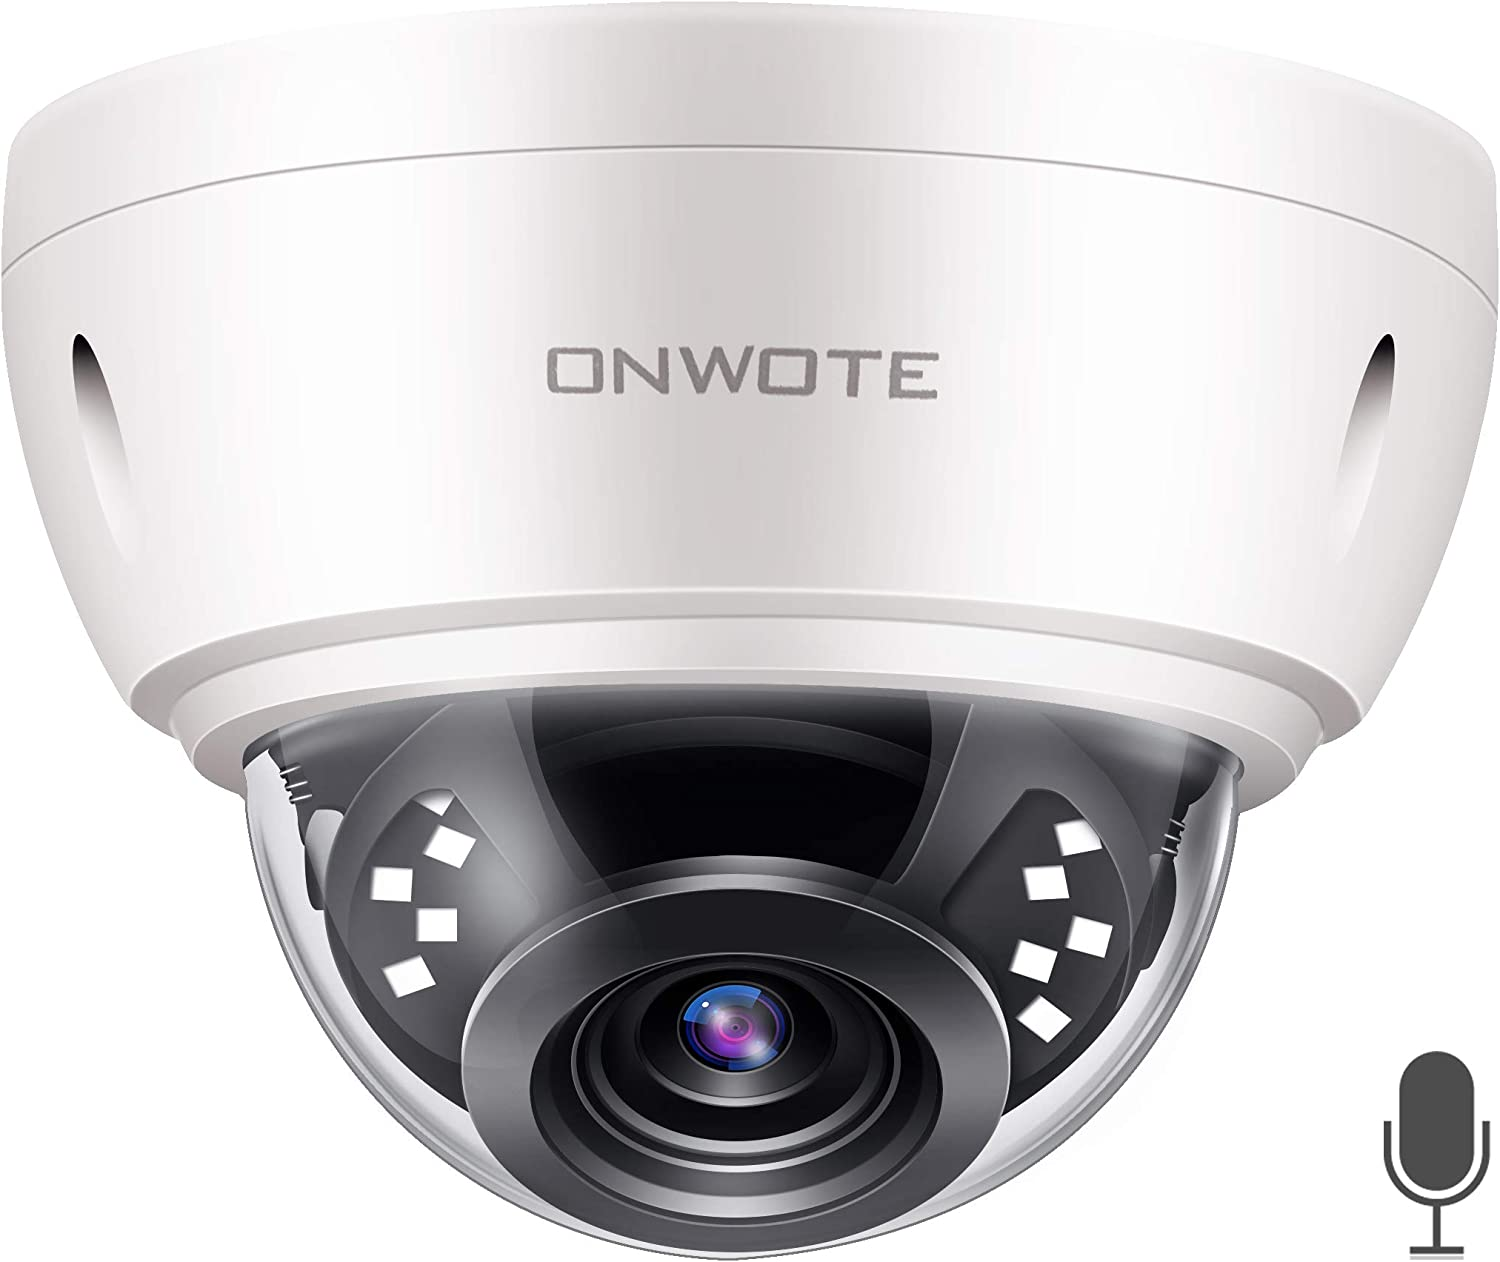 Audio ONWOTE 5MP HD IP POE Security Camera Outdoor Dome Onvif, 5 Megapixels 2592x 1944P Super HD Vandalproof Camera, 100ft IR, 90 Viewing Angle, IP66 Waterproof, Remote Access, Motion Alert